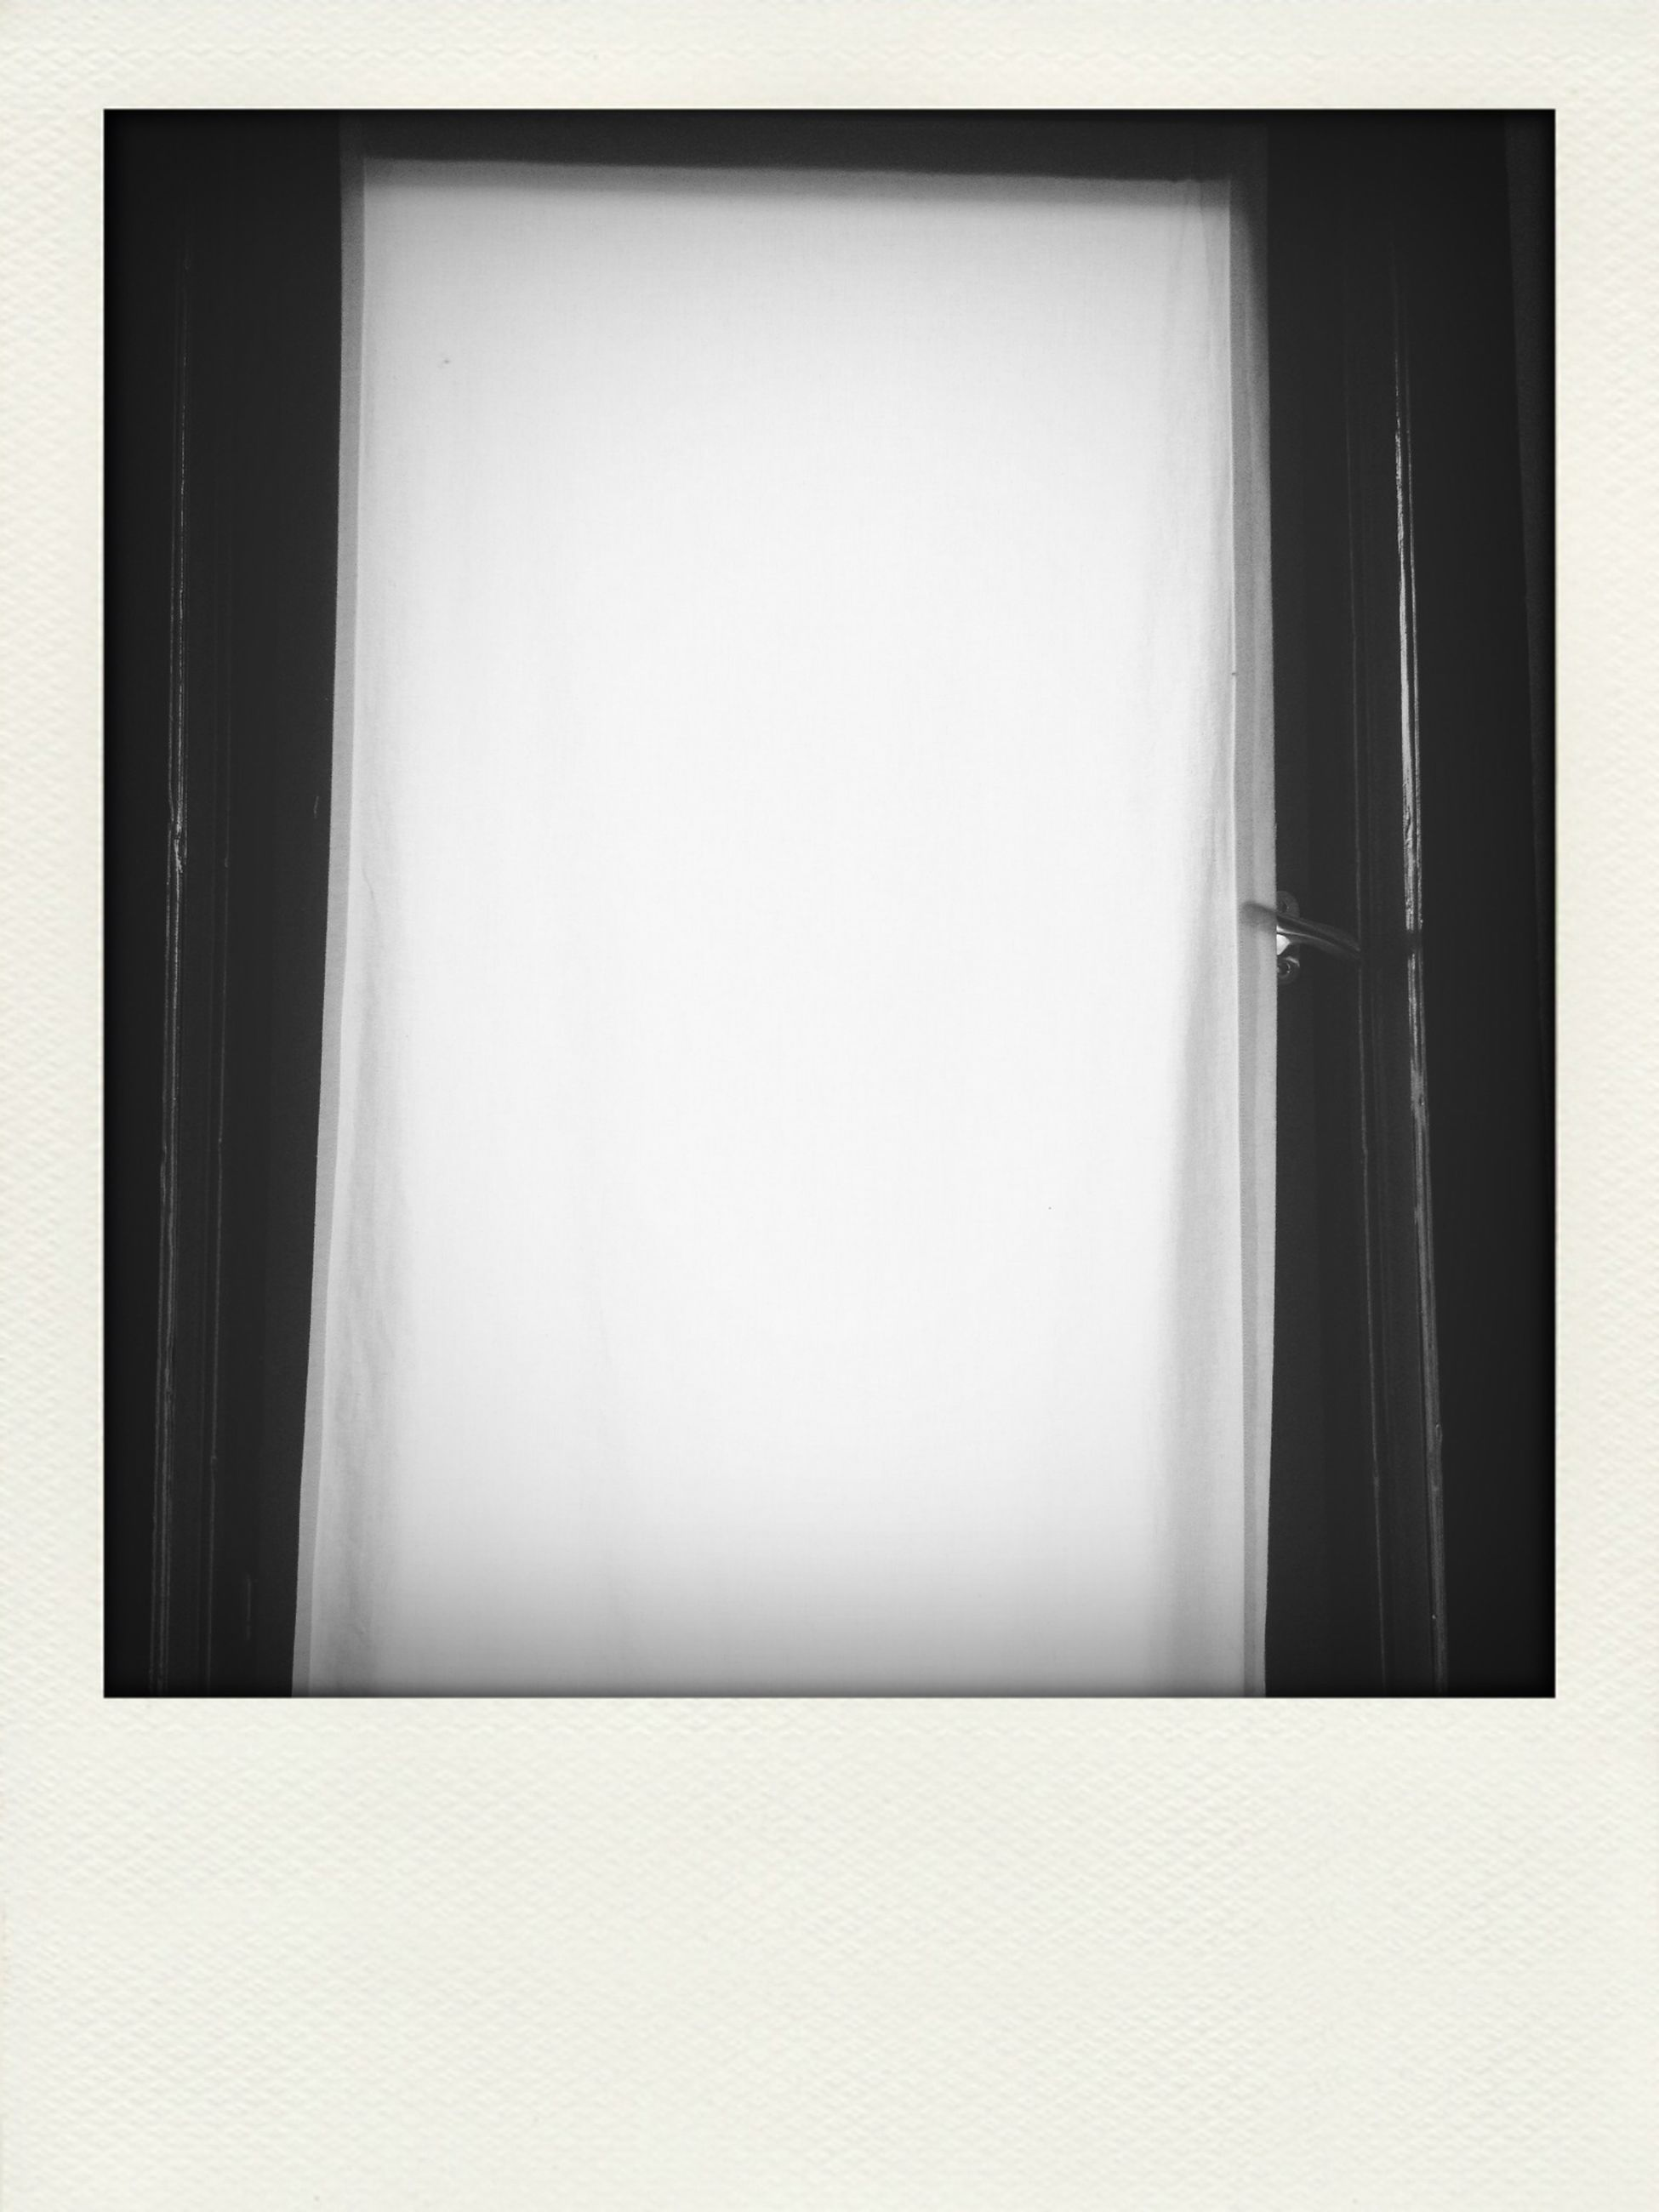 curtain, copy space, no people, indoors, frame, close-up, day